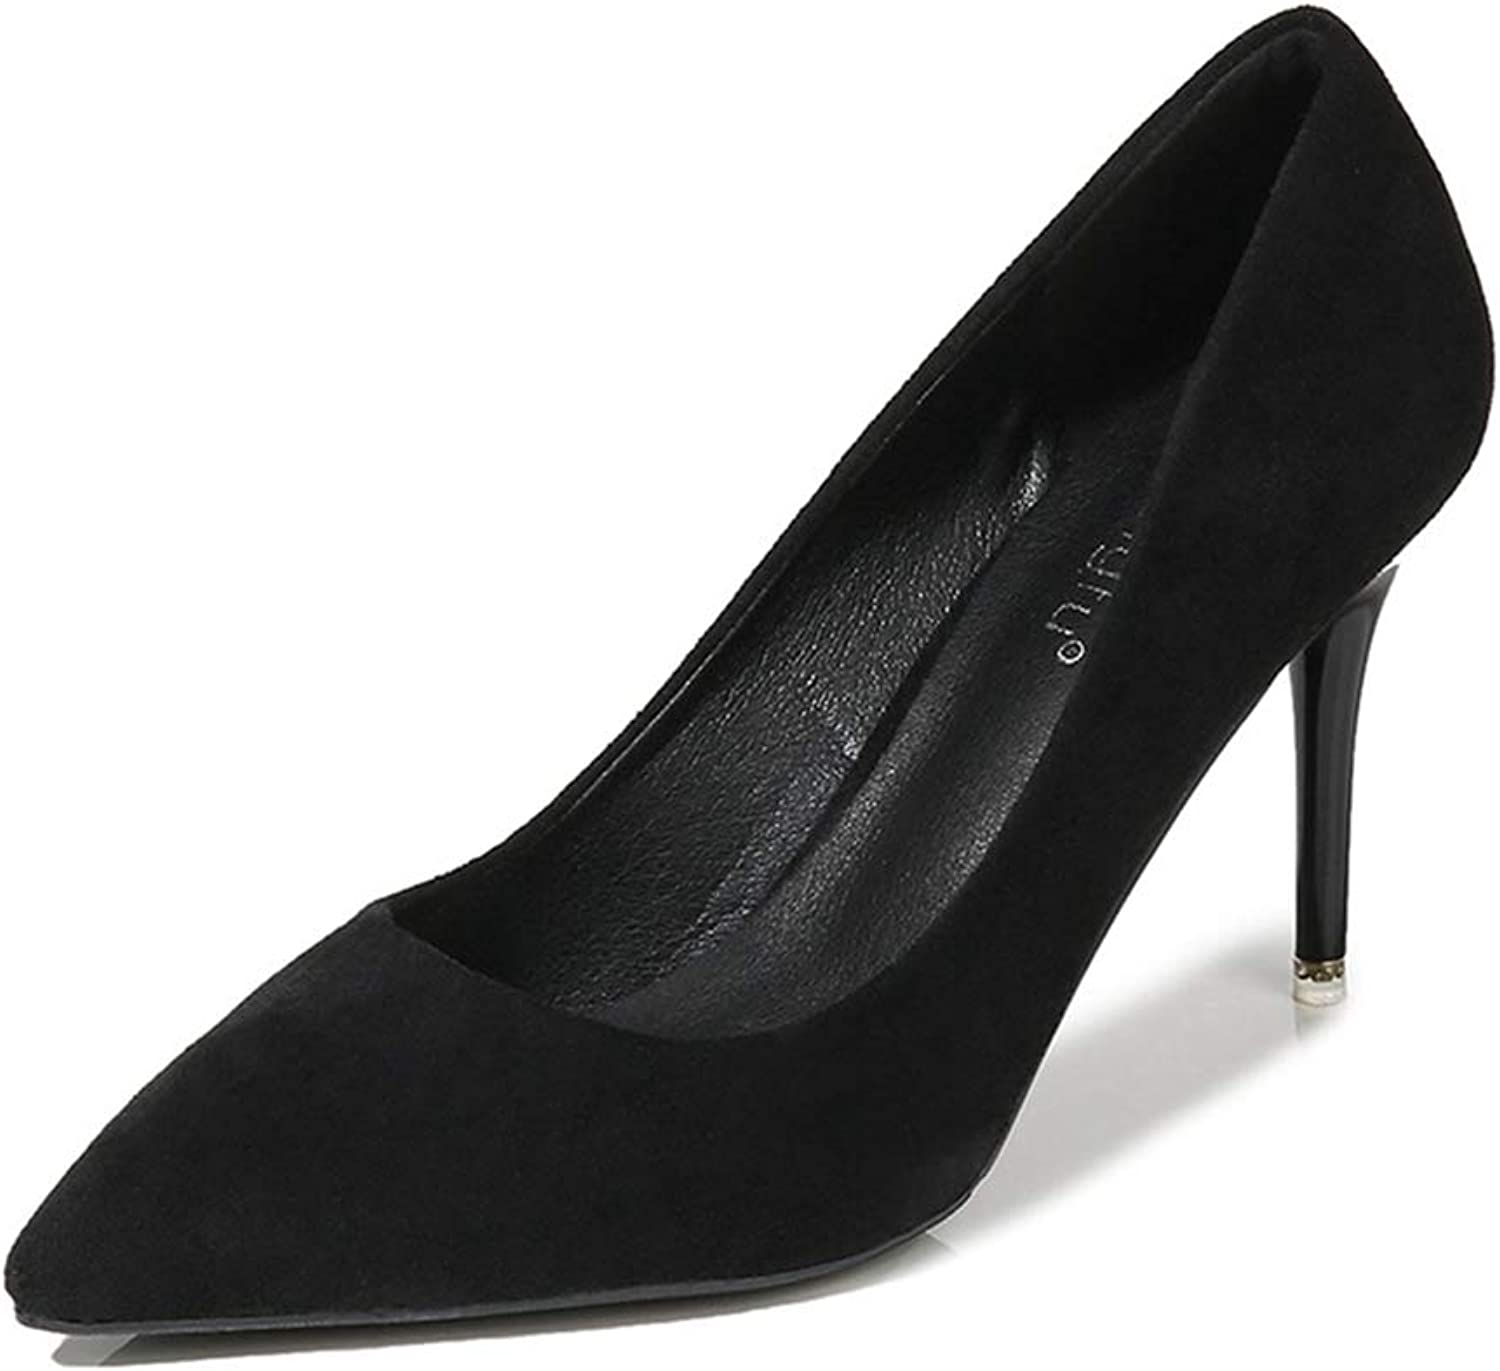 Sam Carle Womens Formal Pumps,High Thin Heel Fashion Sexy Black Suede Leather Work shoes